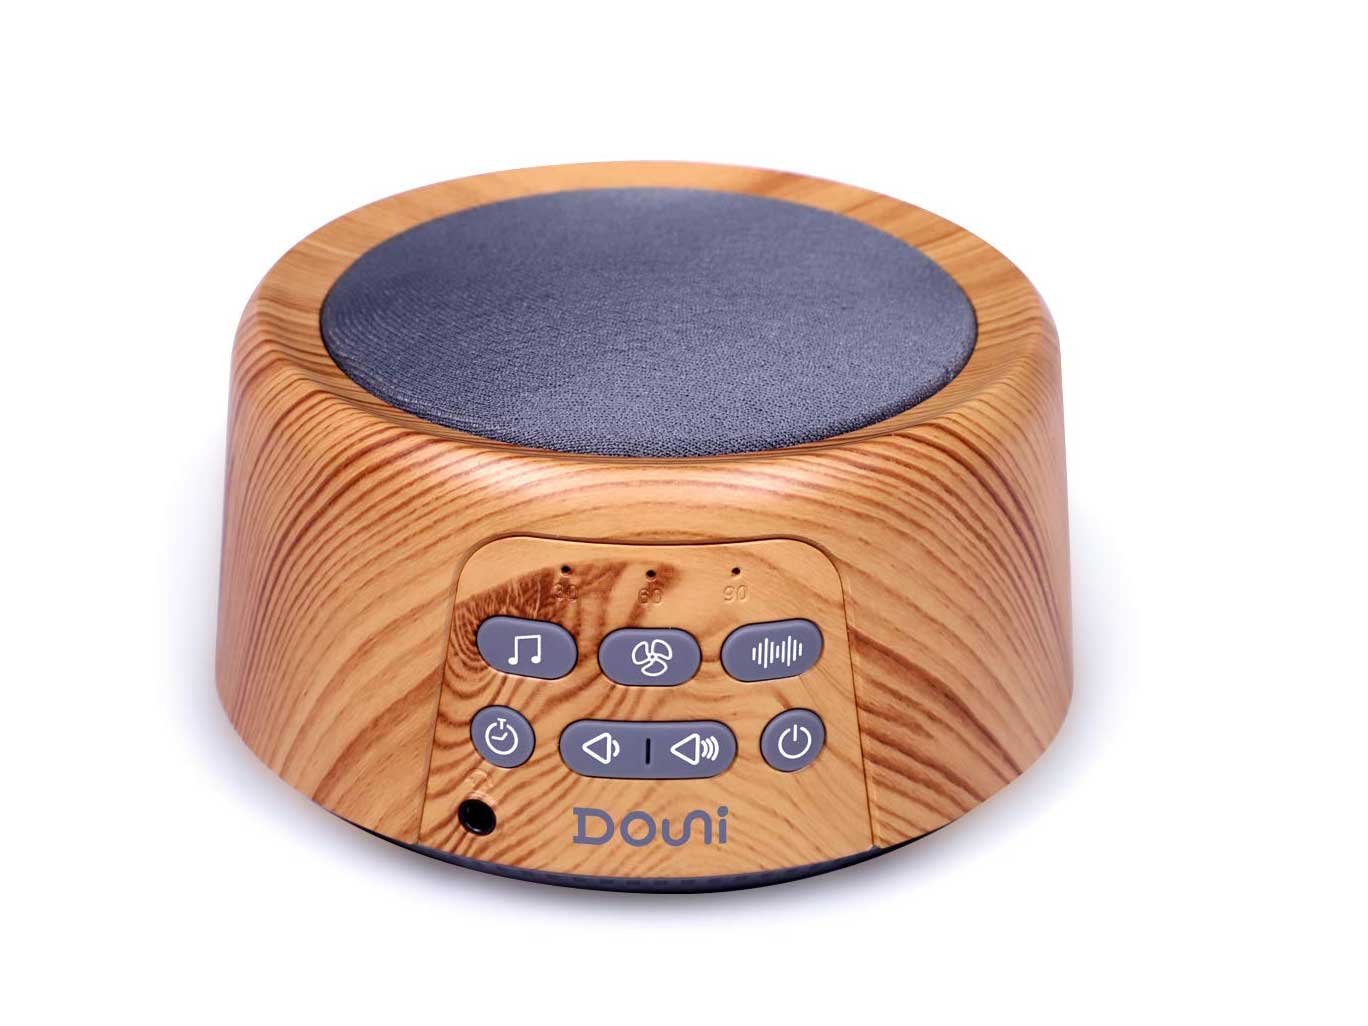 Douni Sleep Sound Machine - White Noise Machine with 24 Soothing Sounds for Sleeping & Relaxation